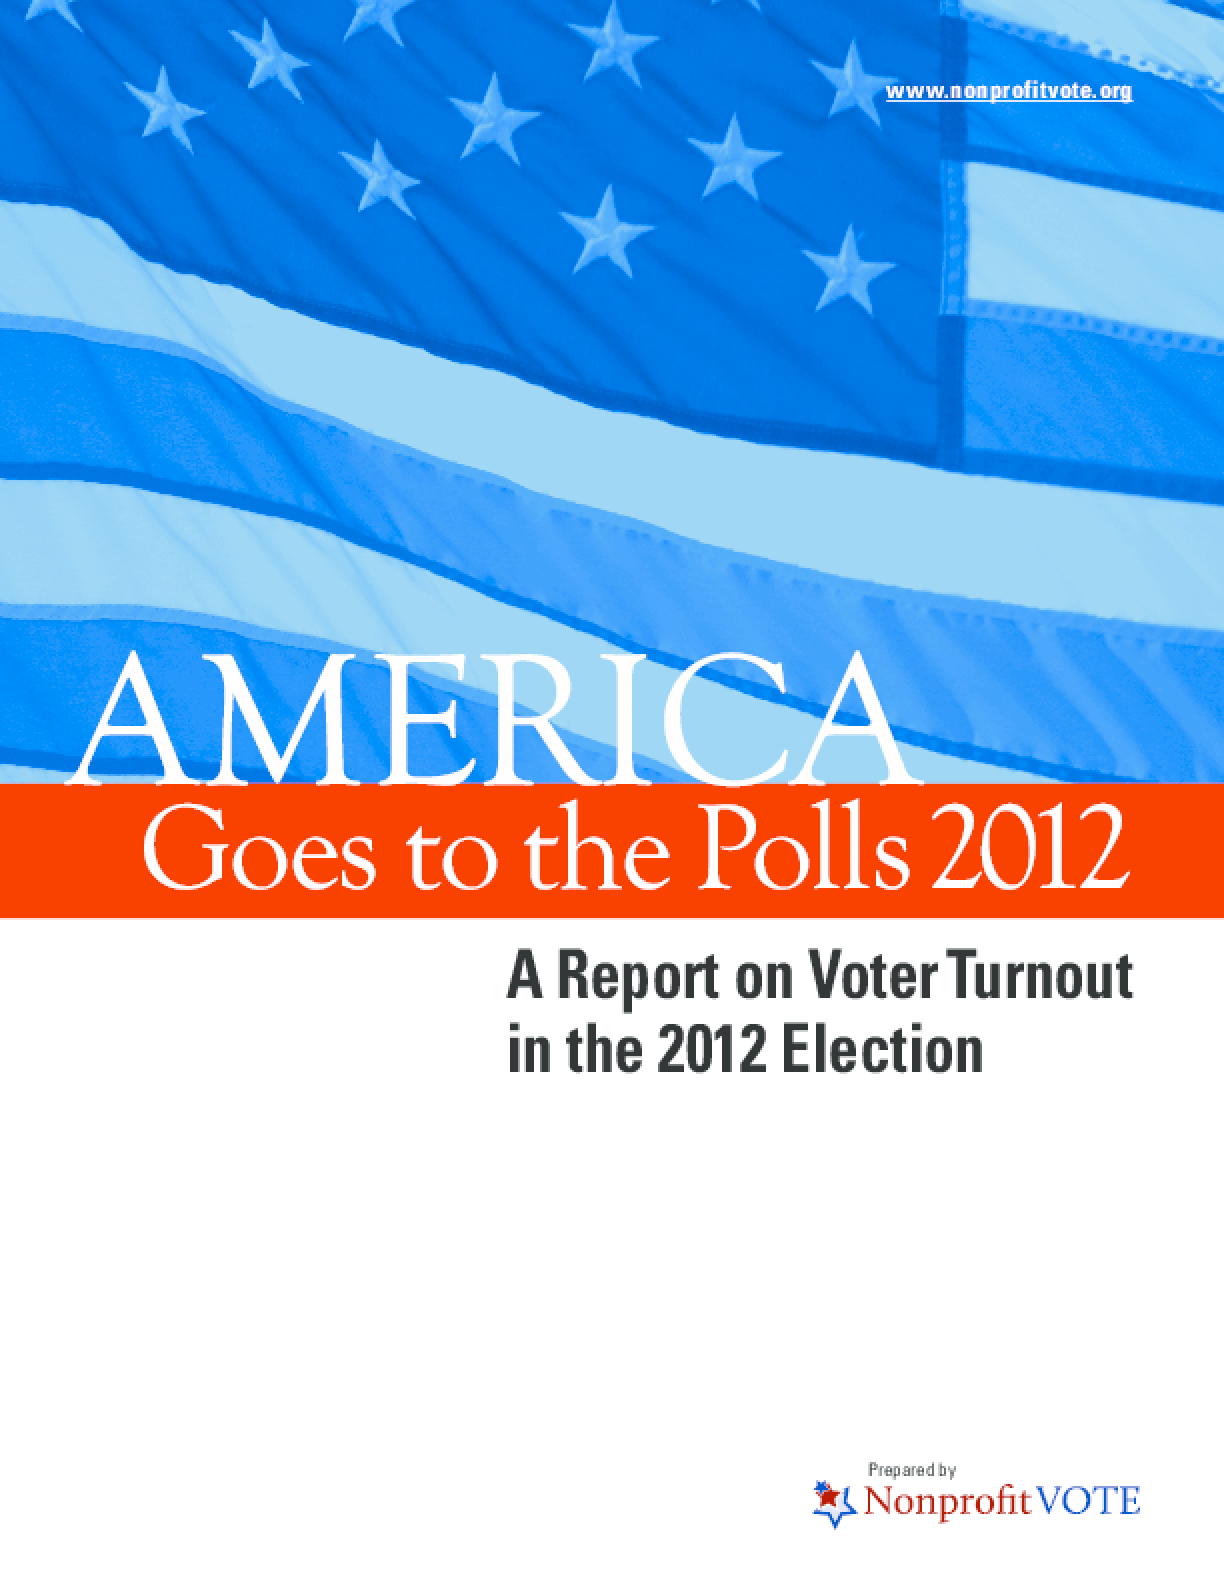 America Goes to the Polls 2012: A Report on Voter Turnout in the 2012 Election